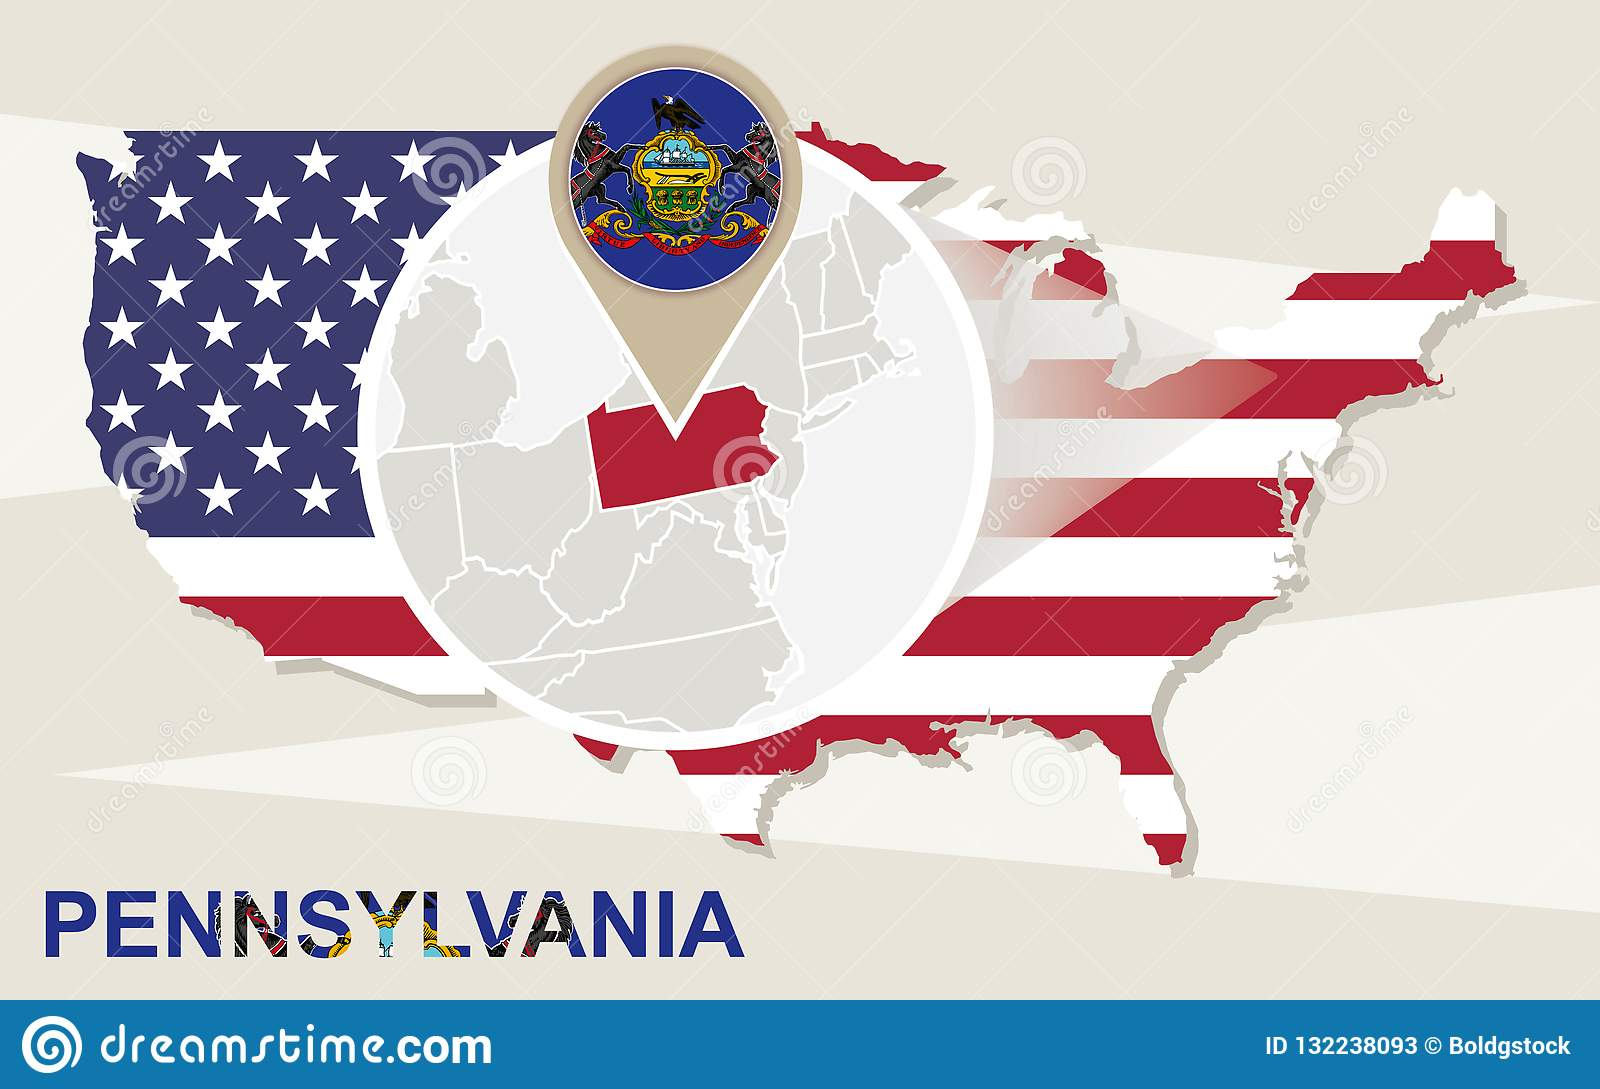 Pennsylvania In Usa Map.Usa Map With Magnified Pennsylvania State Pennsylvania Flag And